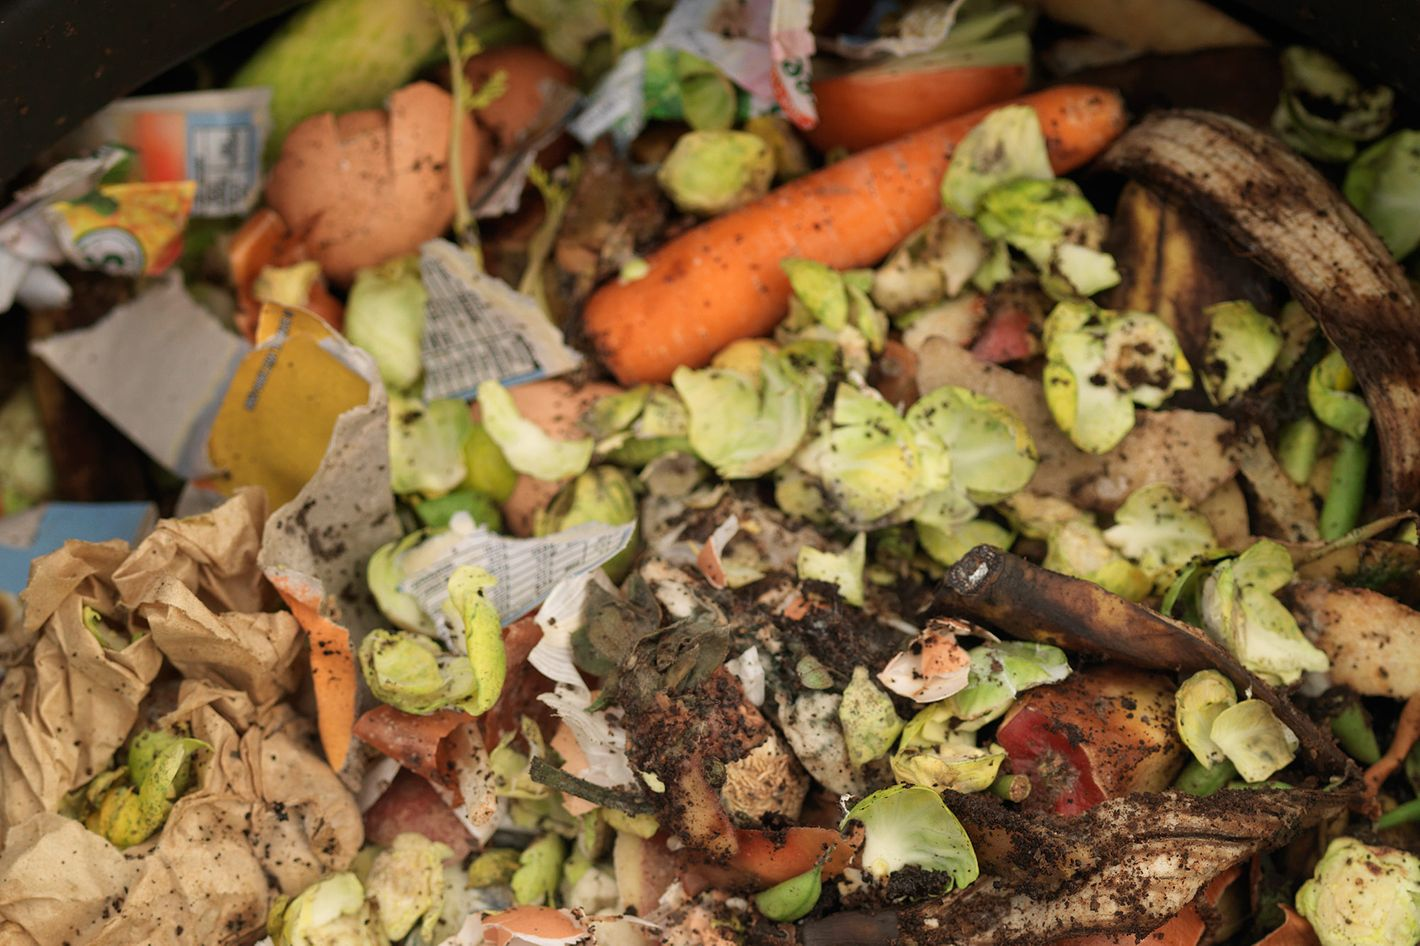 New Jersey\'s Plan to Turn Supermarket Food Waste Into Energy